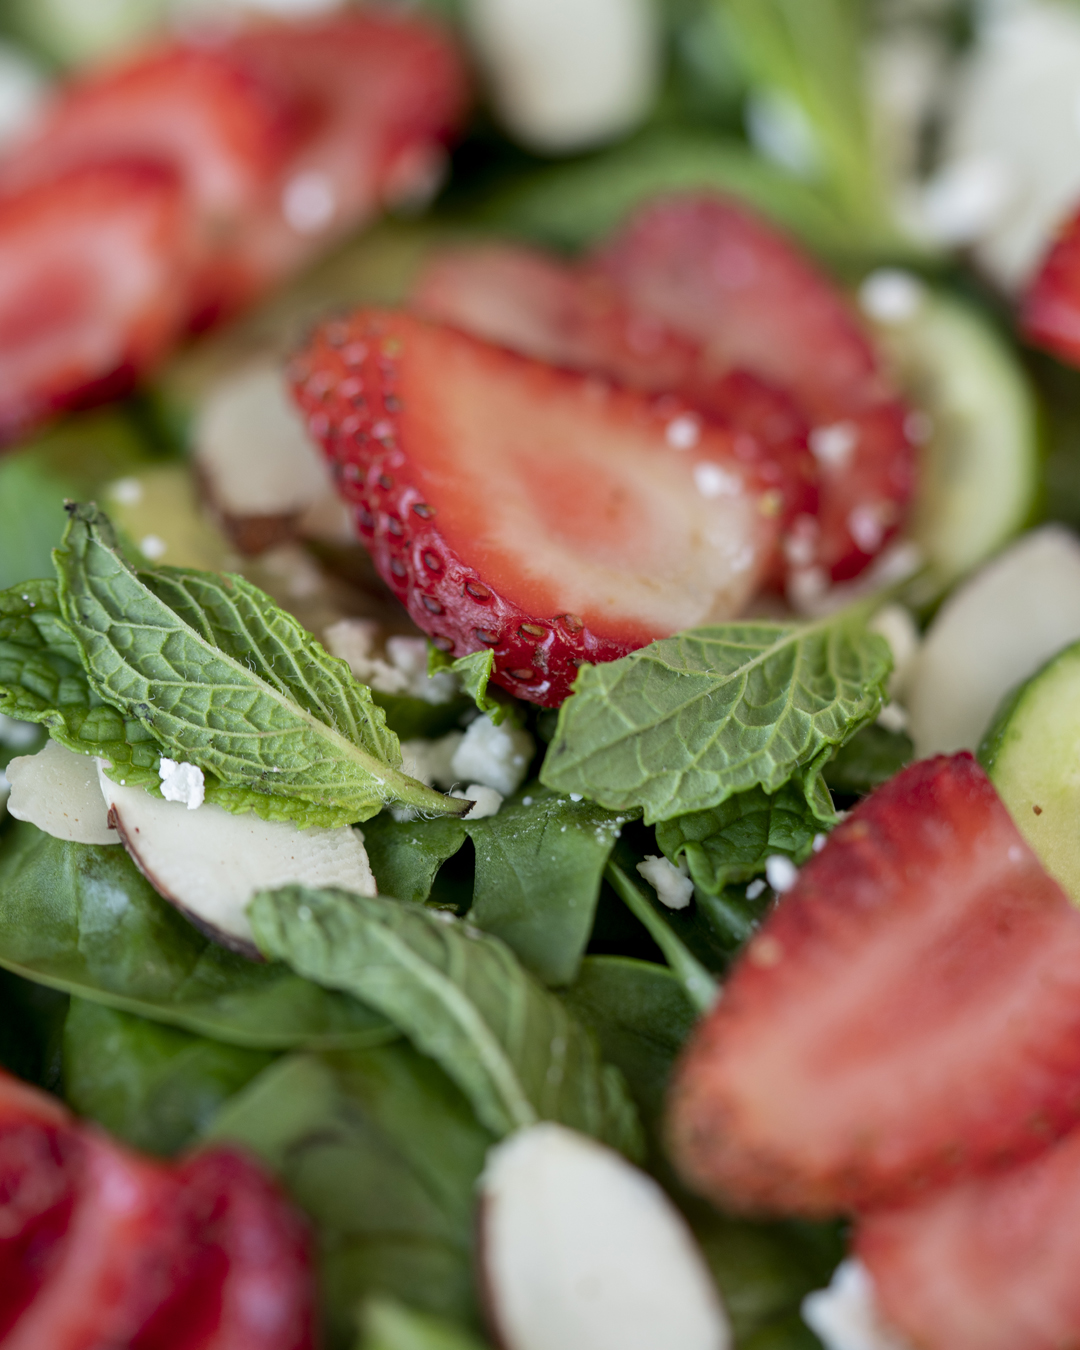 Summer Cucumber and Strawberry Spinach Salad by Knotably Creative House 012.jpg